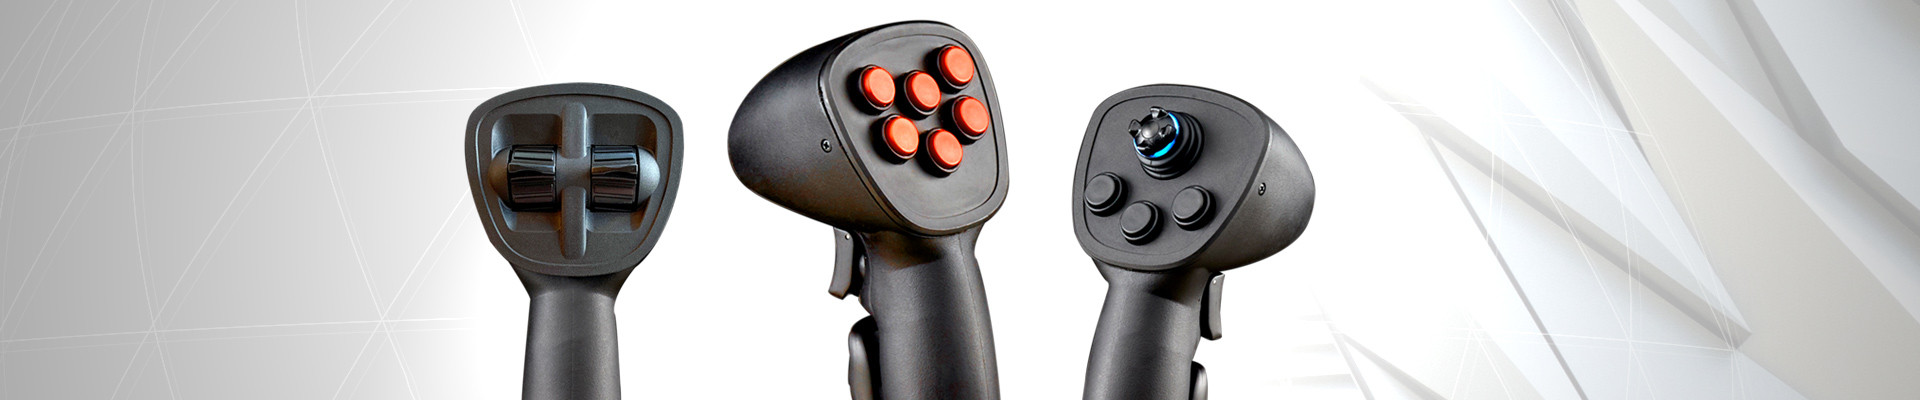 A multi-axis Hand Grip joystick specifically engineered for demanding vehicle applications!